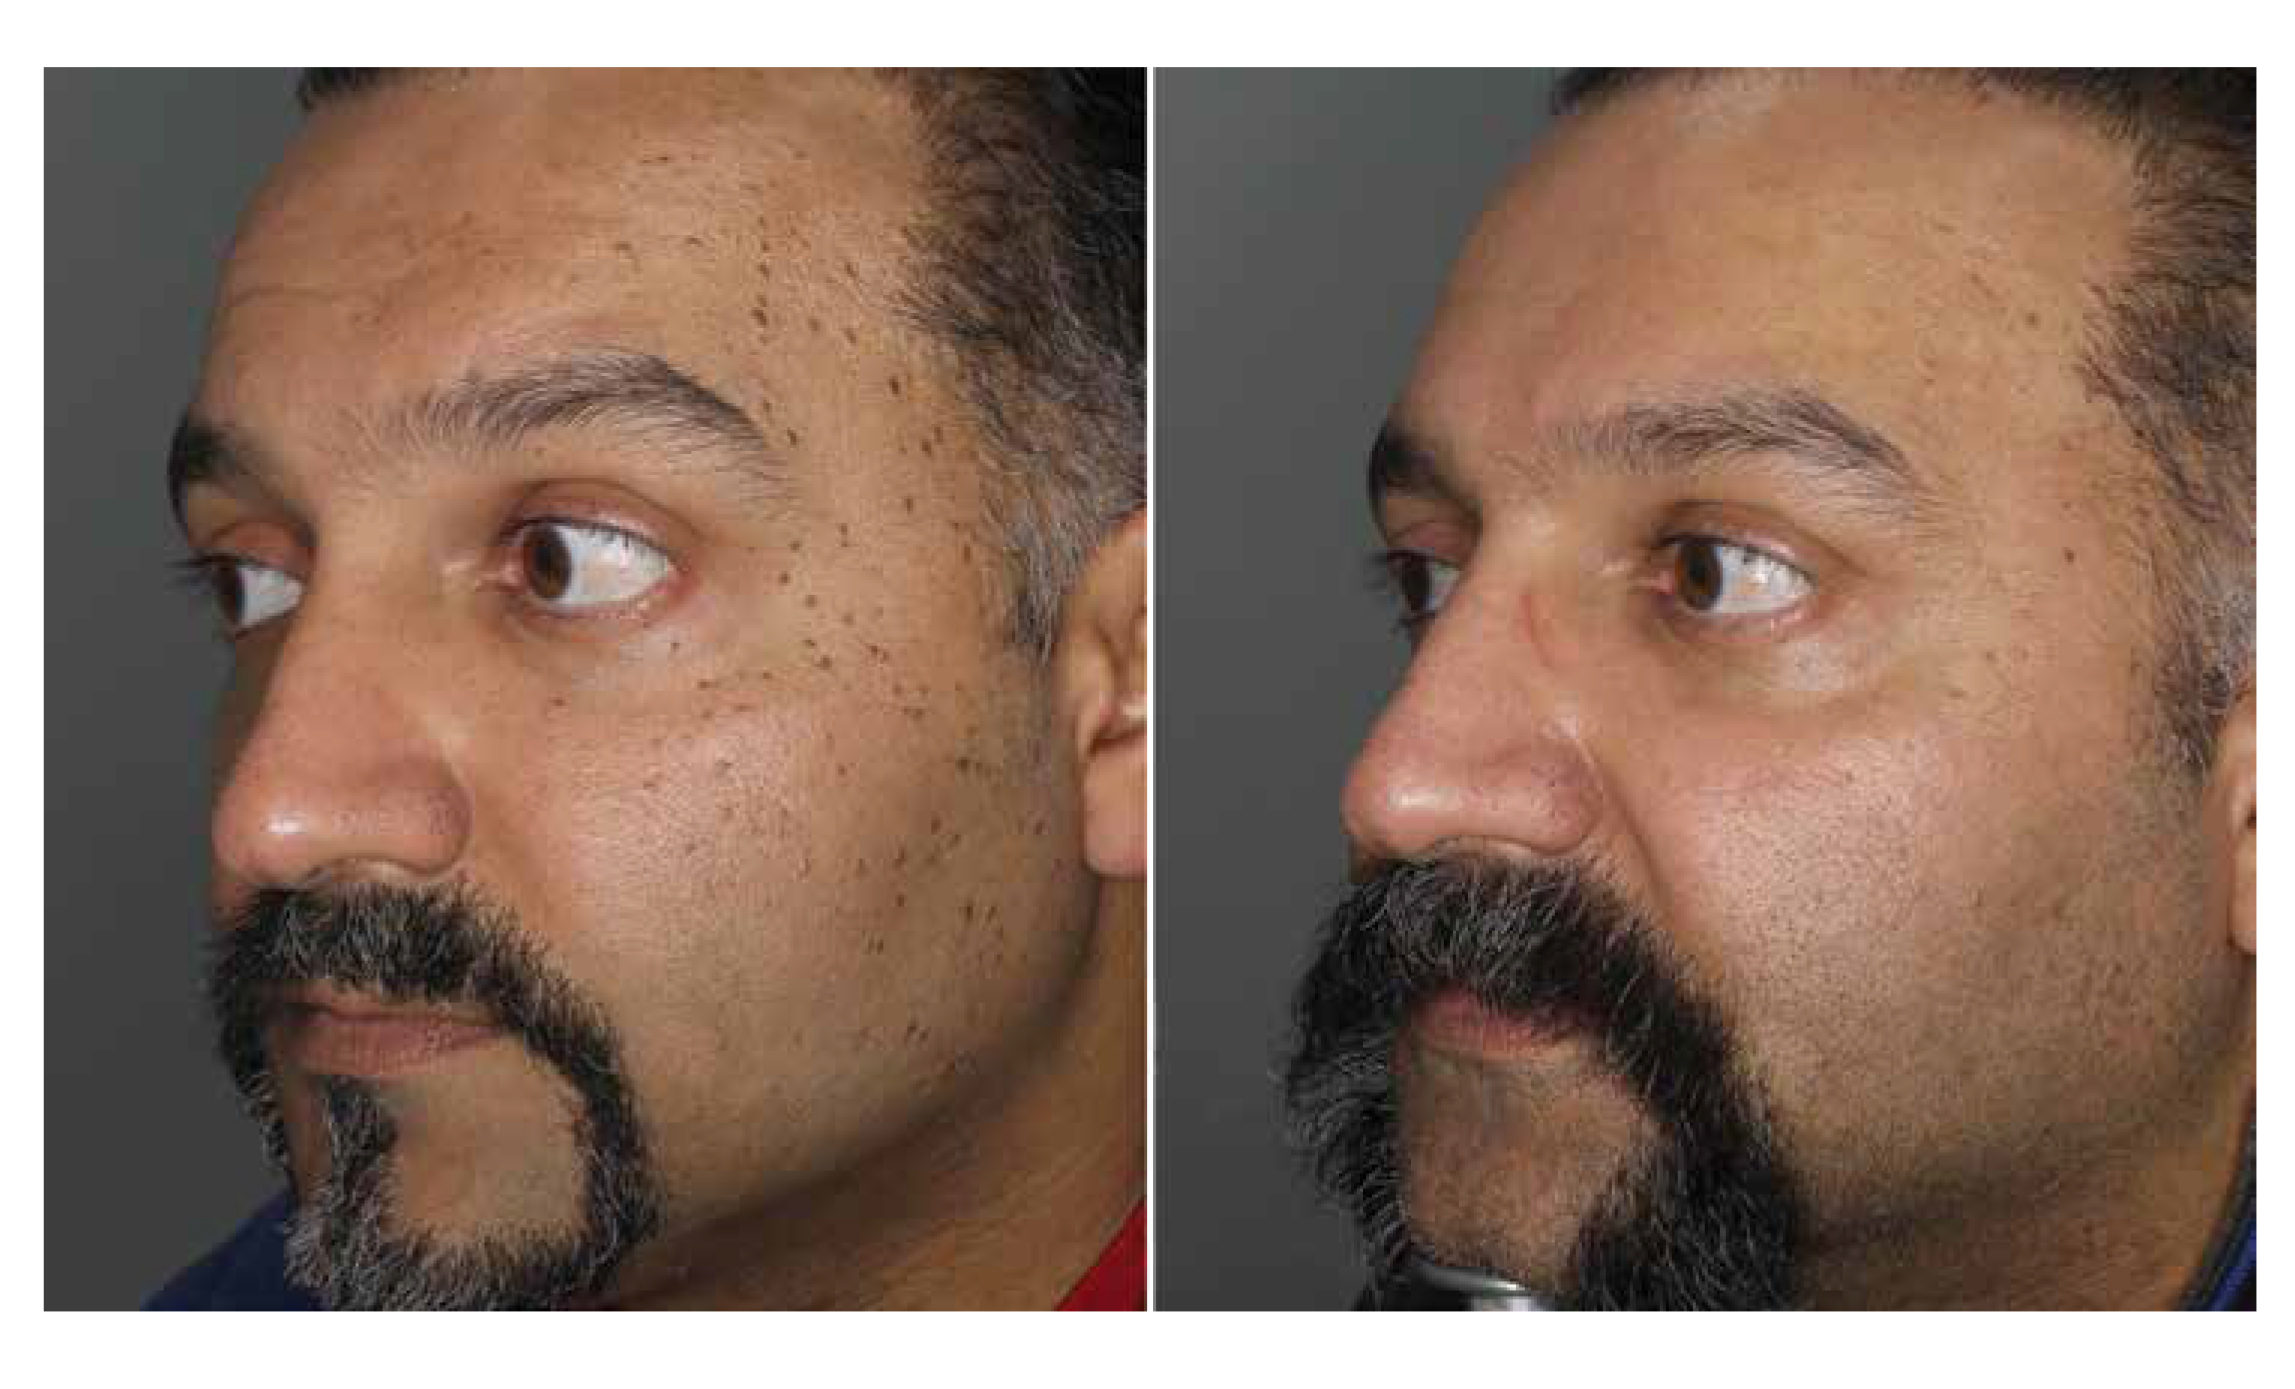 Patient of South Asian descent pictured before and 8 weeks after one treatment session with a long-pulse 532-nm laser